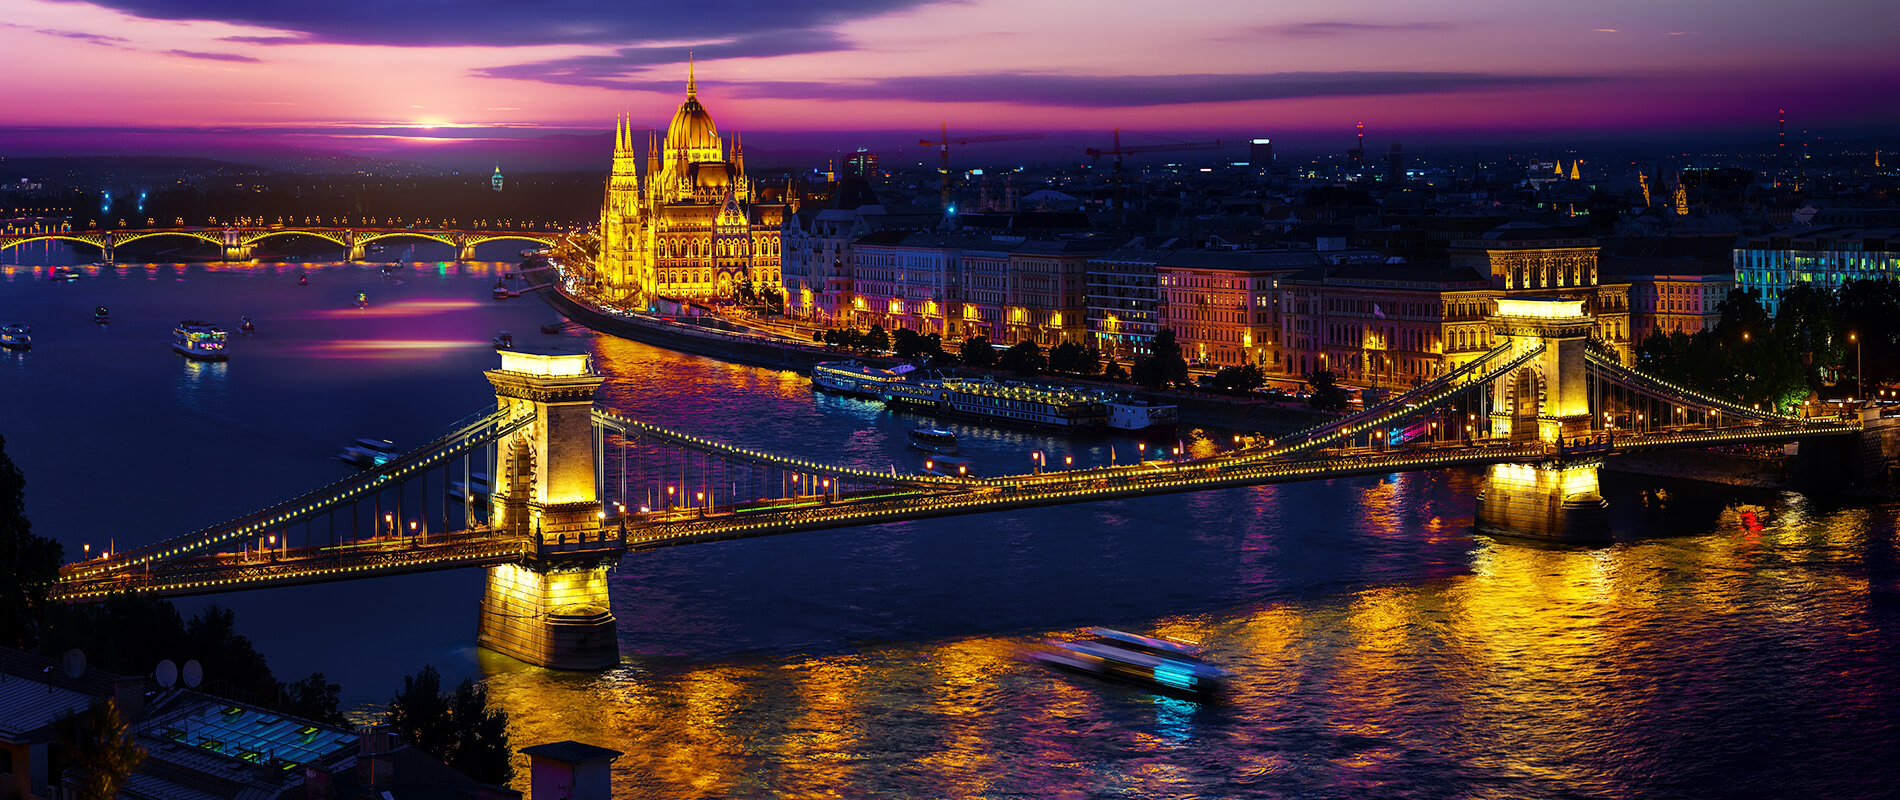 Chain Bridge, an historical gem of Budapest